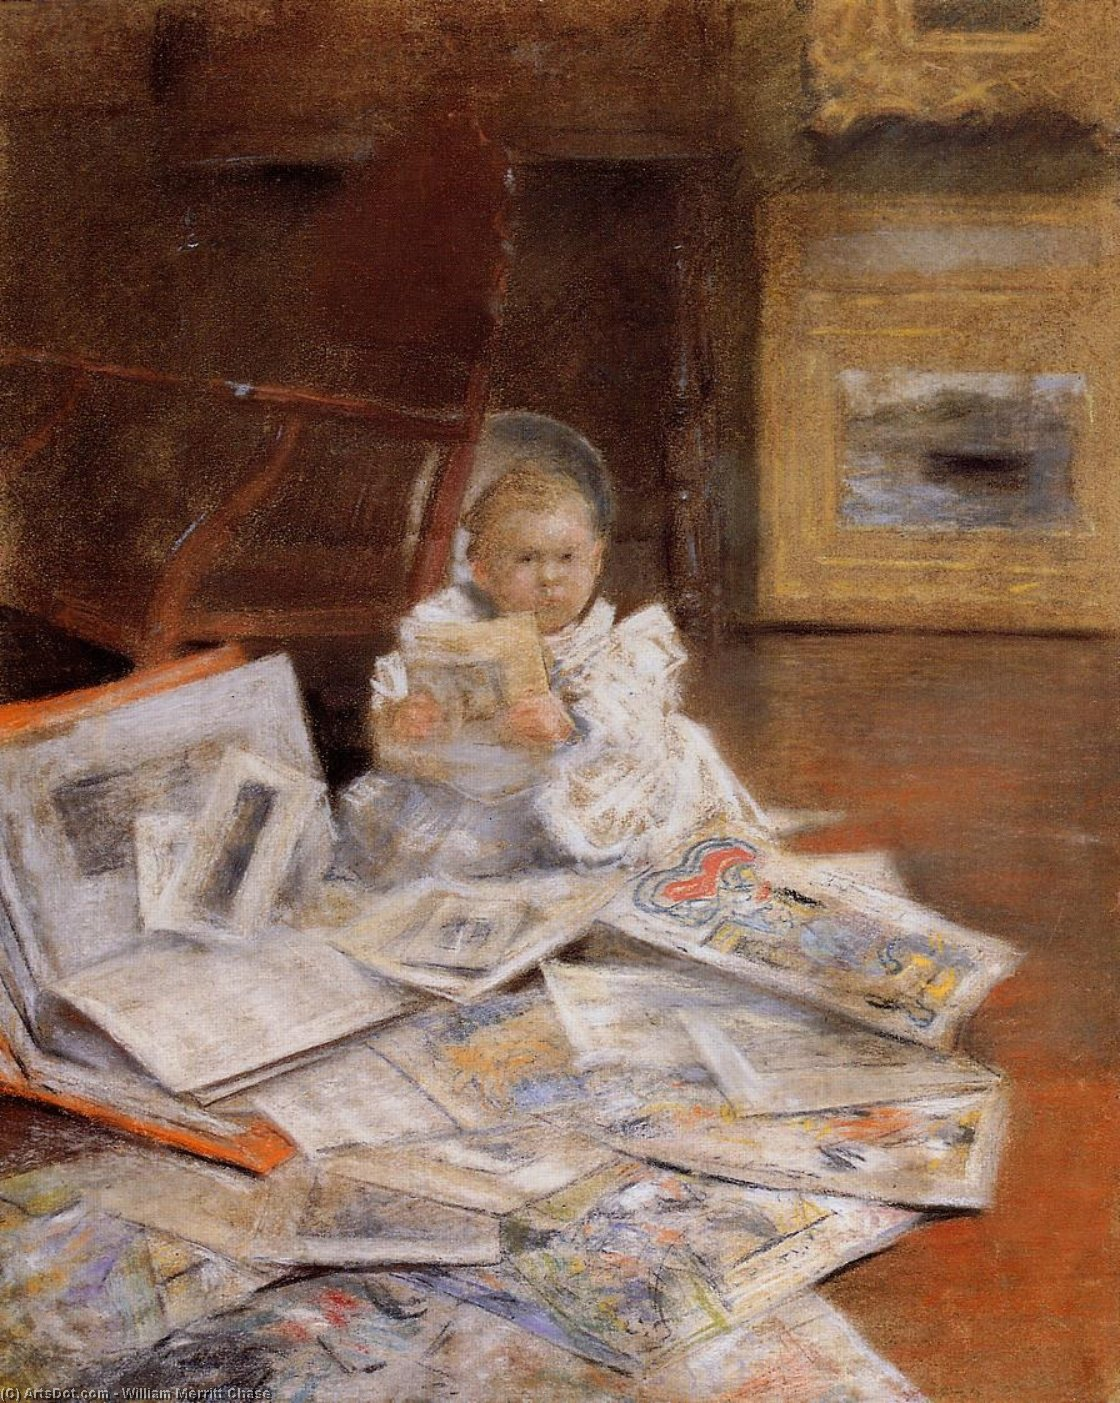 Niño con impresiones, en colores pastel de William Merritt Chase (1849-1916, United States)